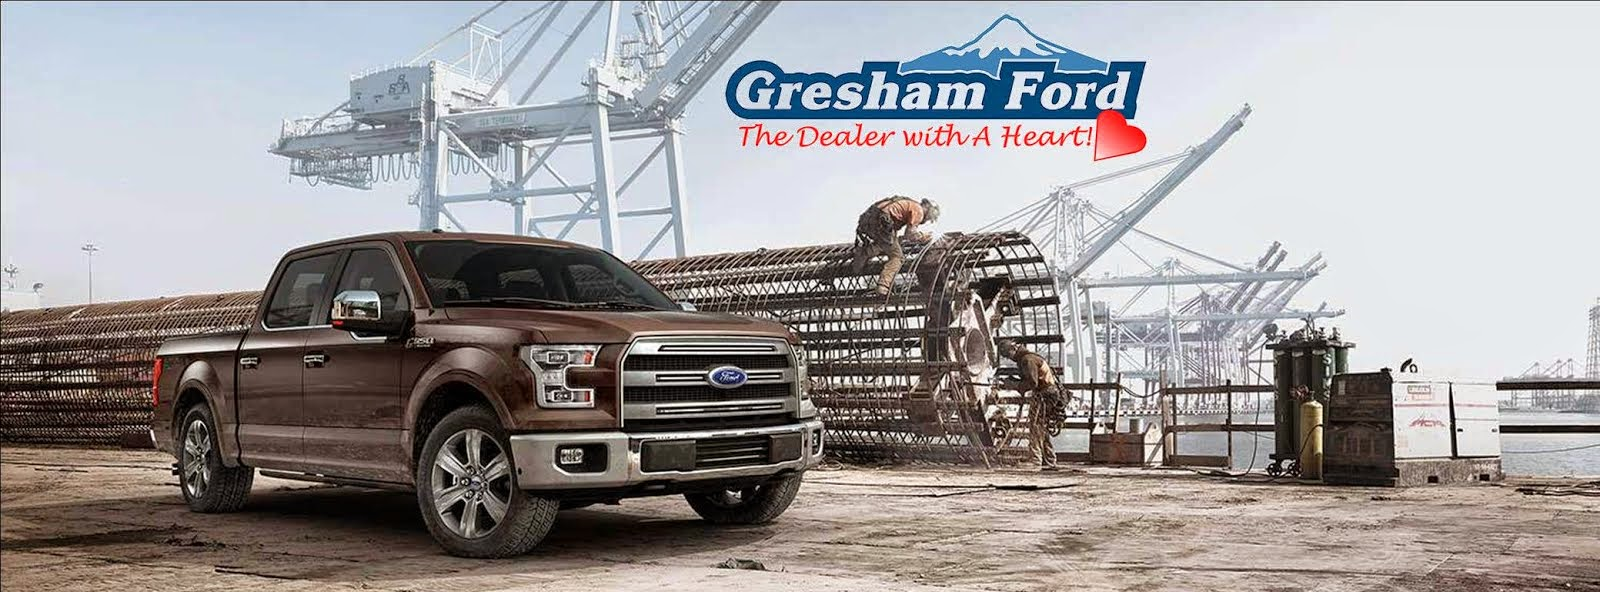 Gresham Ford - Your Oregon Ford Dealership